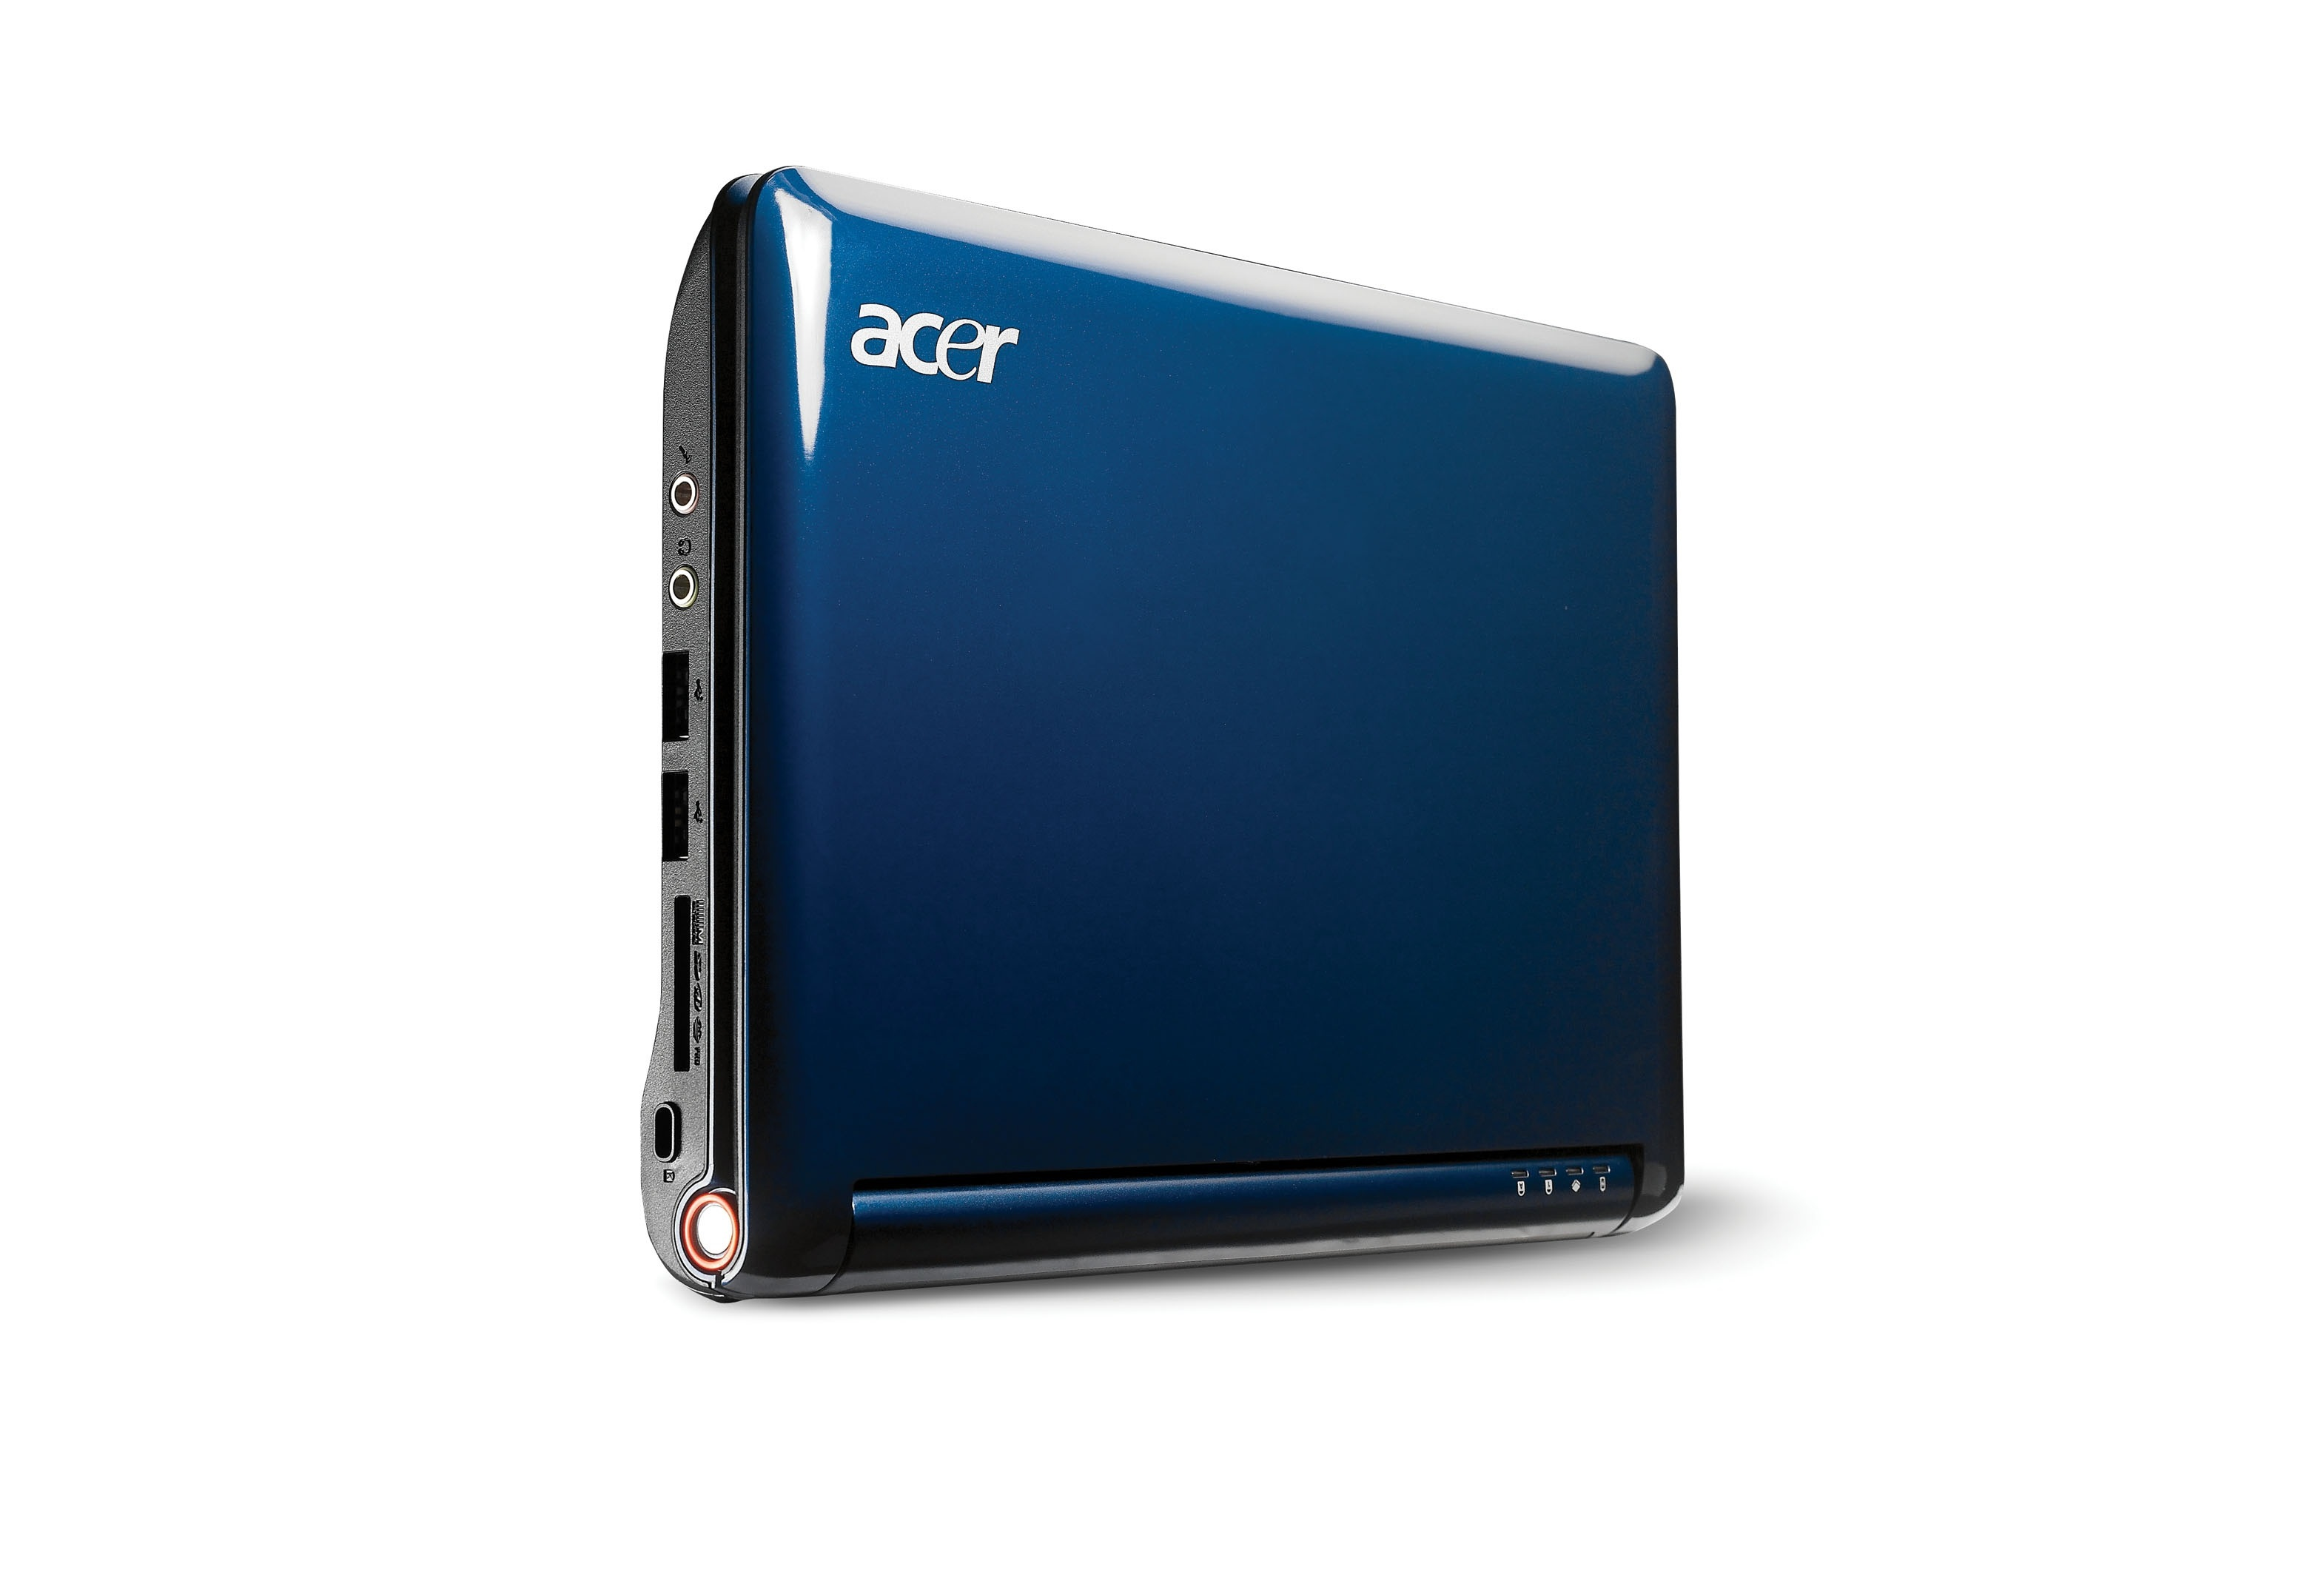 Acer Pictures